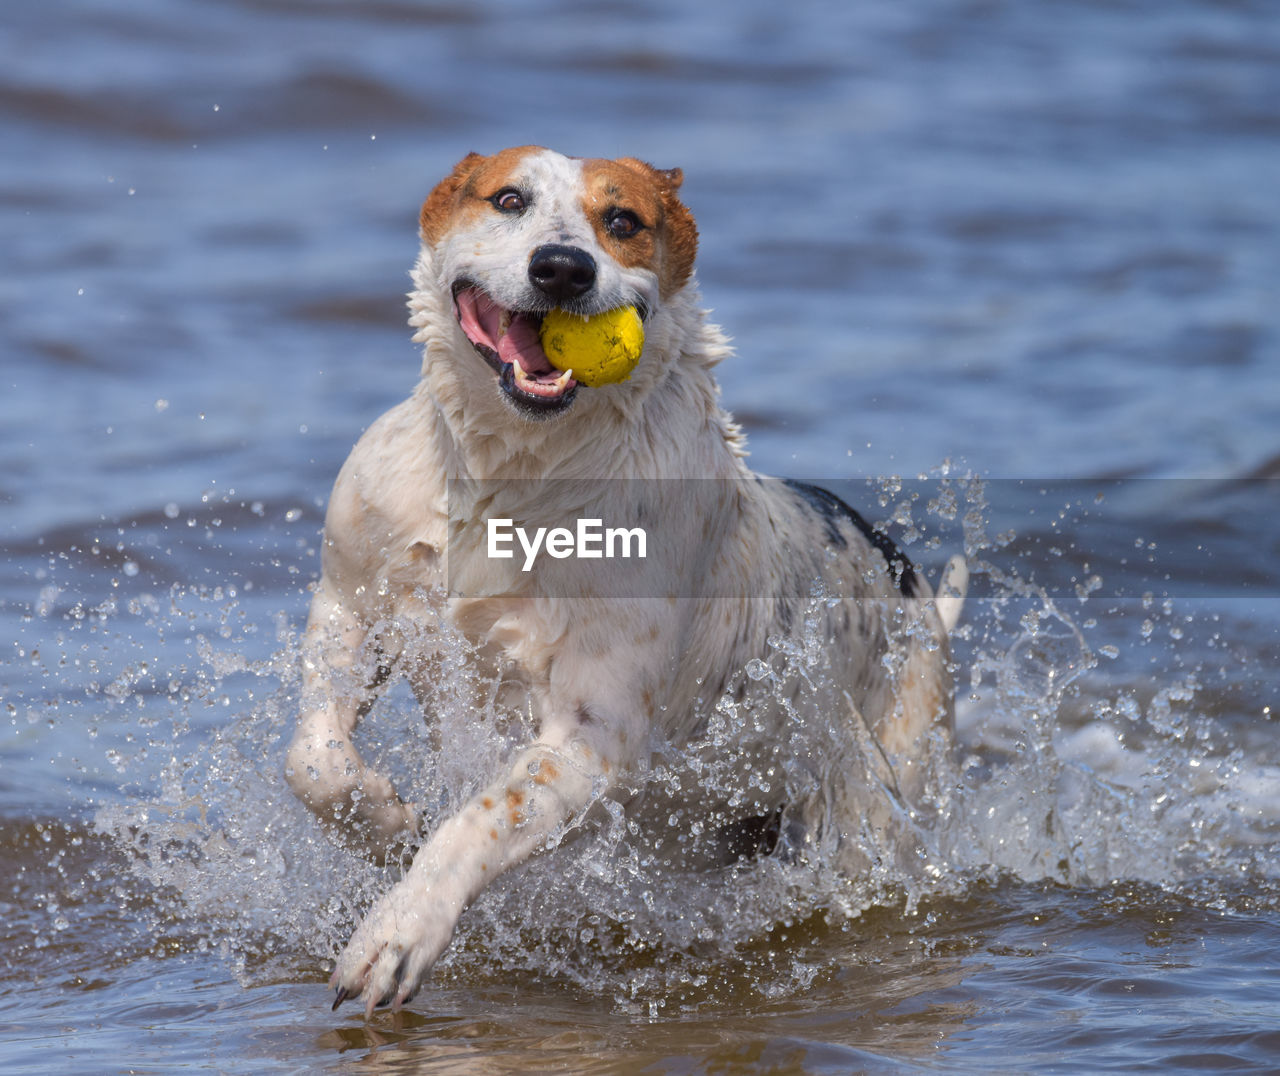 dog, one animal, canine, water, motion, mammal, animal, animal themes, pets, splashing, domestic, running, domestic animals, vertebrate, ball, carrying in mouth, waterfront, day, nature, outdoors, no people